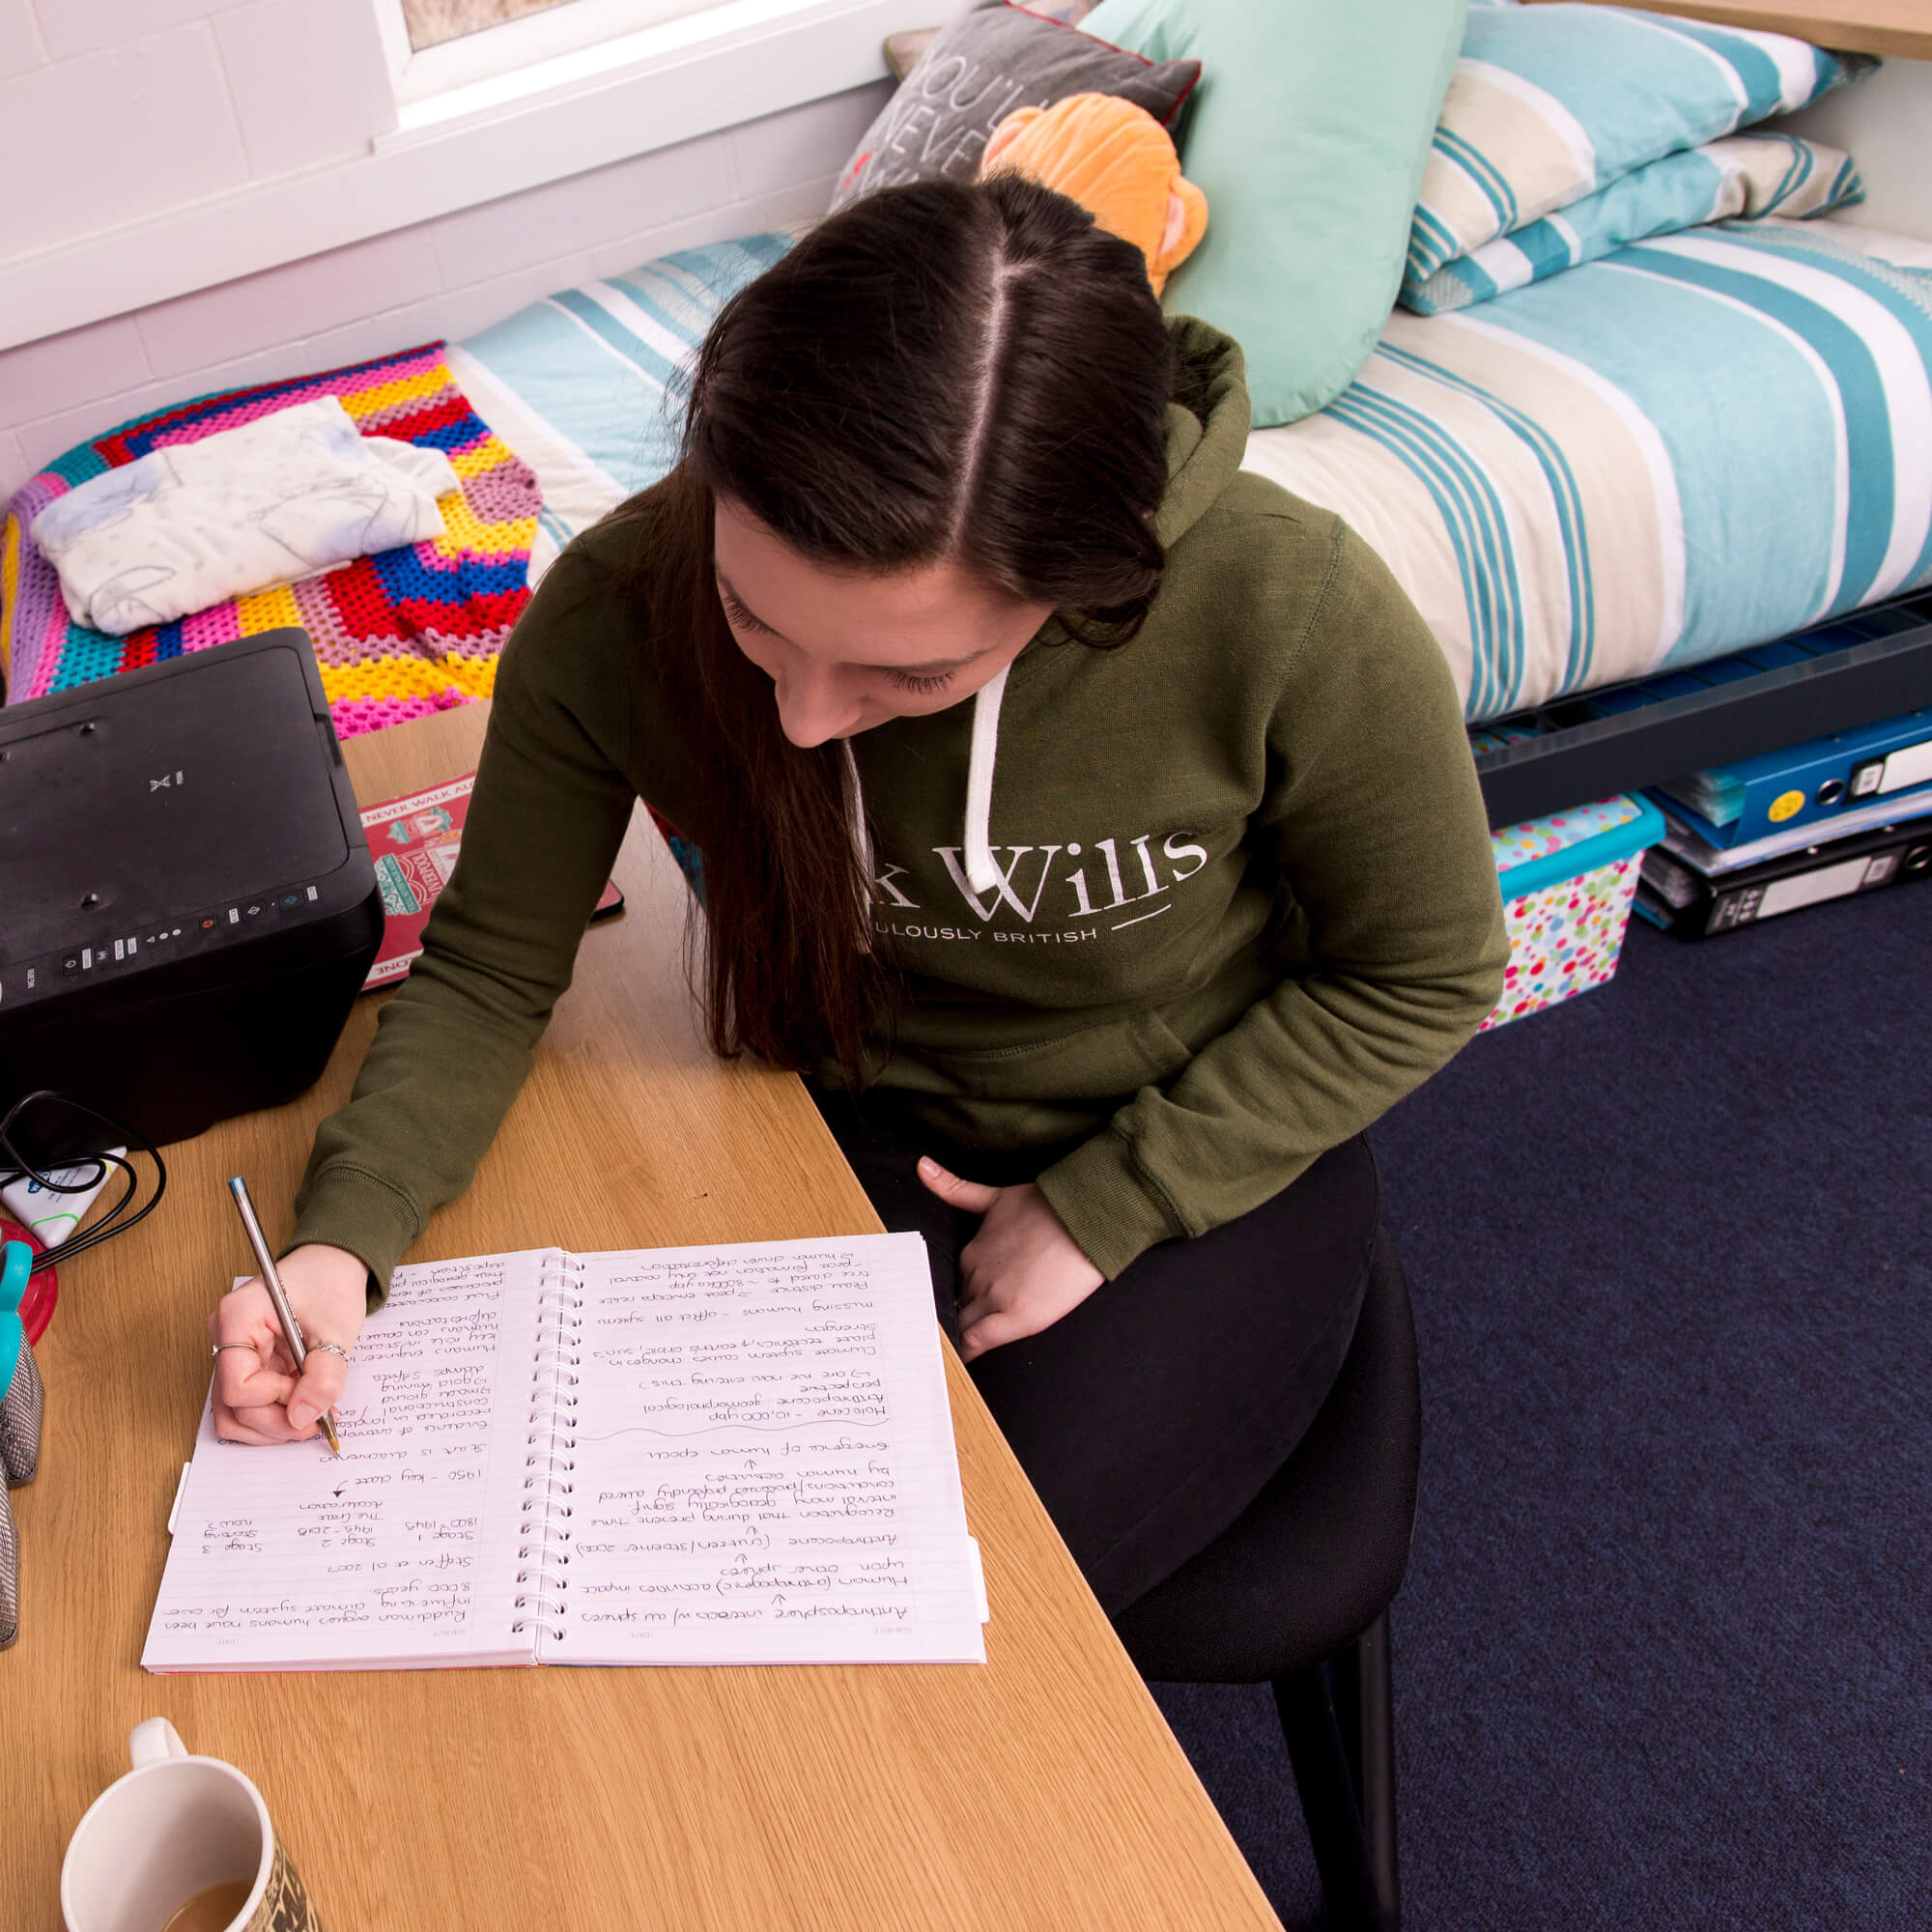 Student writing in notebook at a bedroom desk in halls